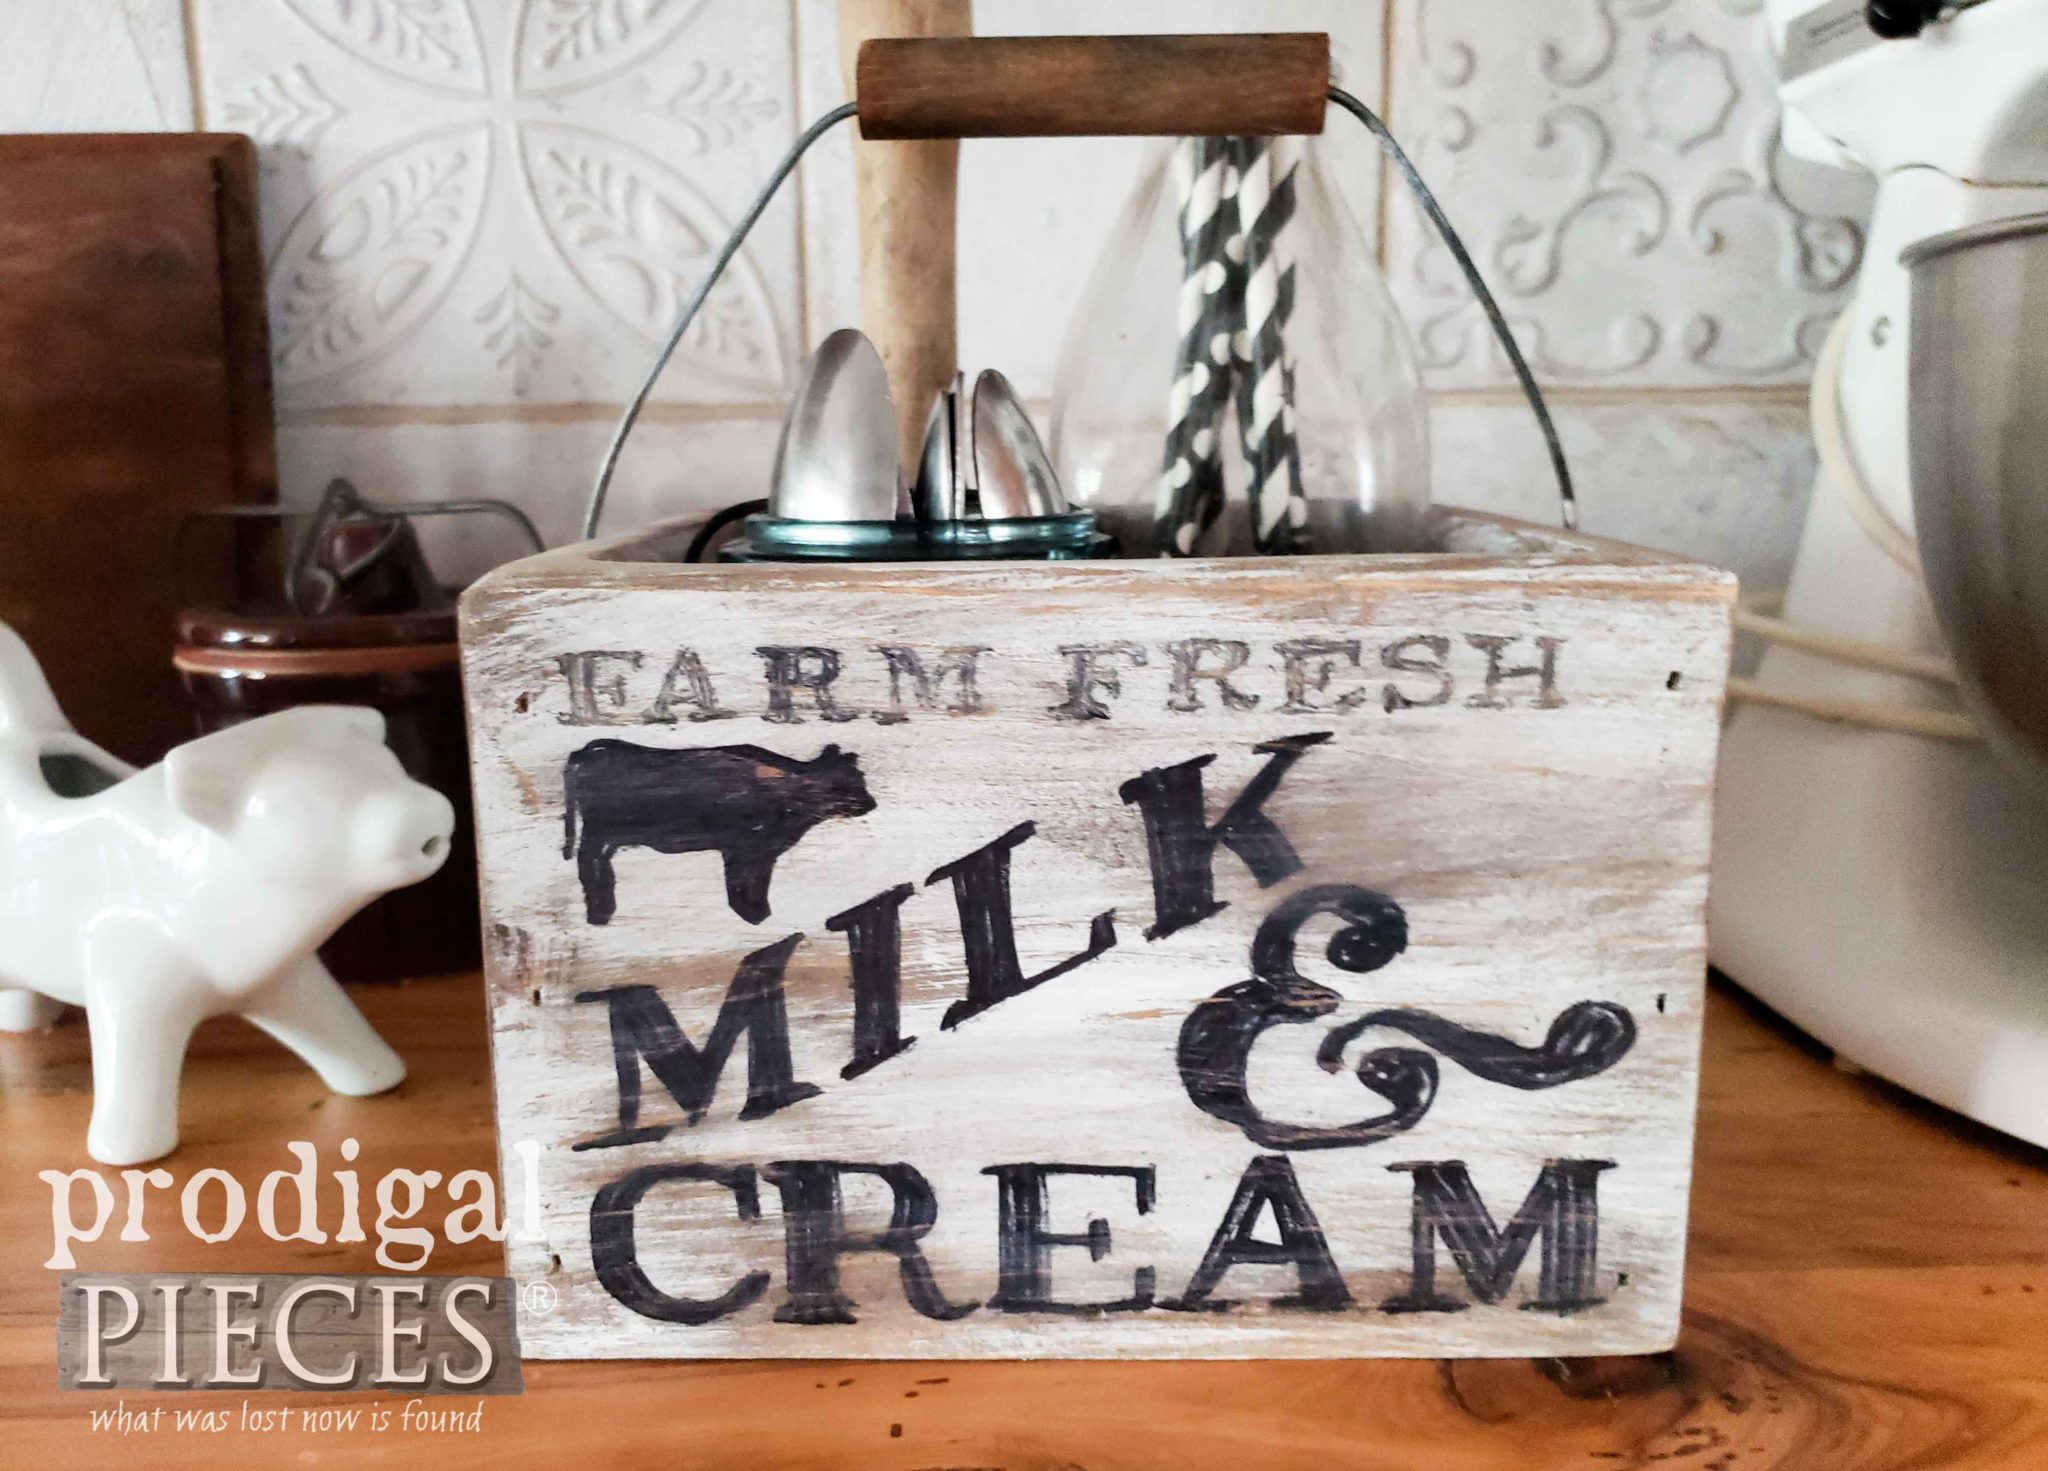 Farmhouse Milk & Cream Caddy for Kitchen Storage | Video tutorial by Larissa of Prodigal Pieces | prodigalpieces.com #prodigalpieces #farmhouse #kitchen #diy #home #homedecor